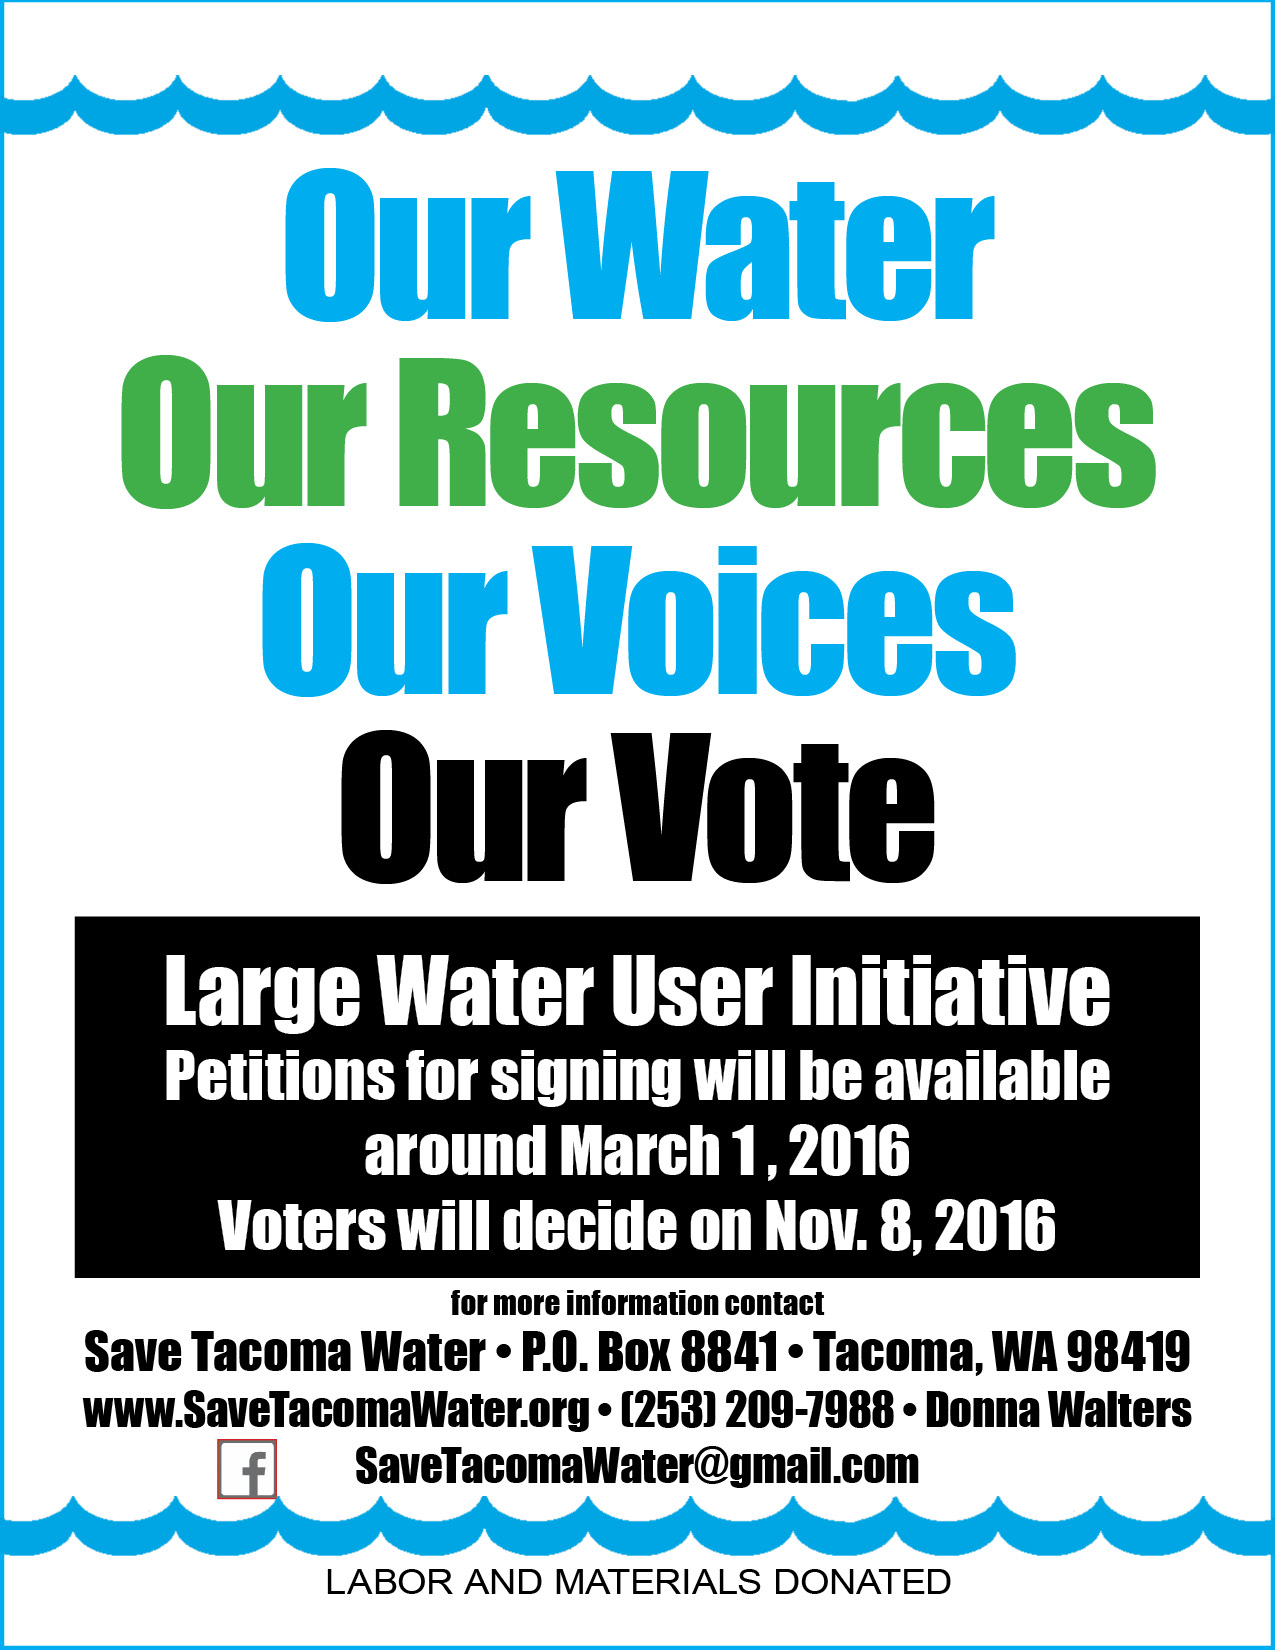 Our Water Our Resources